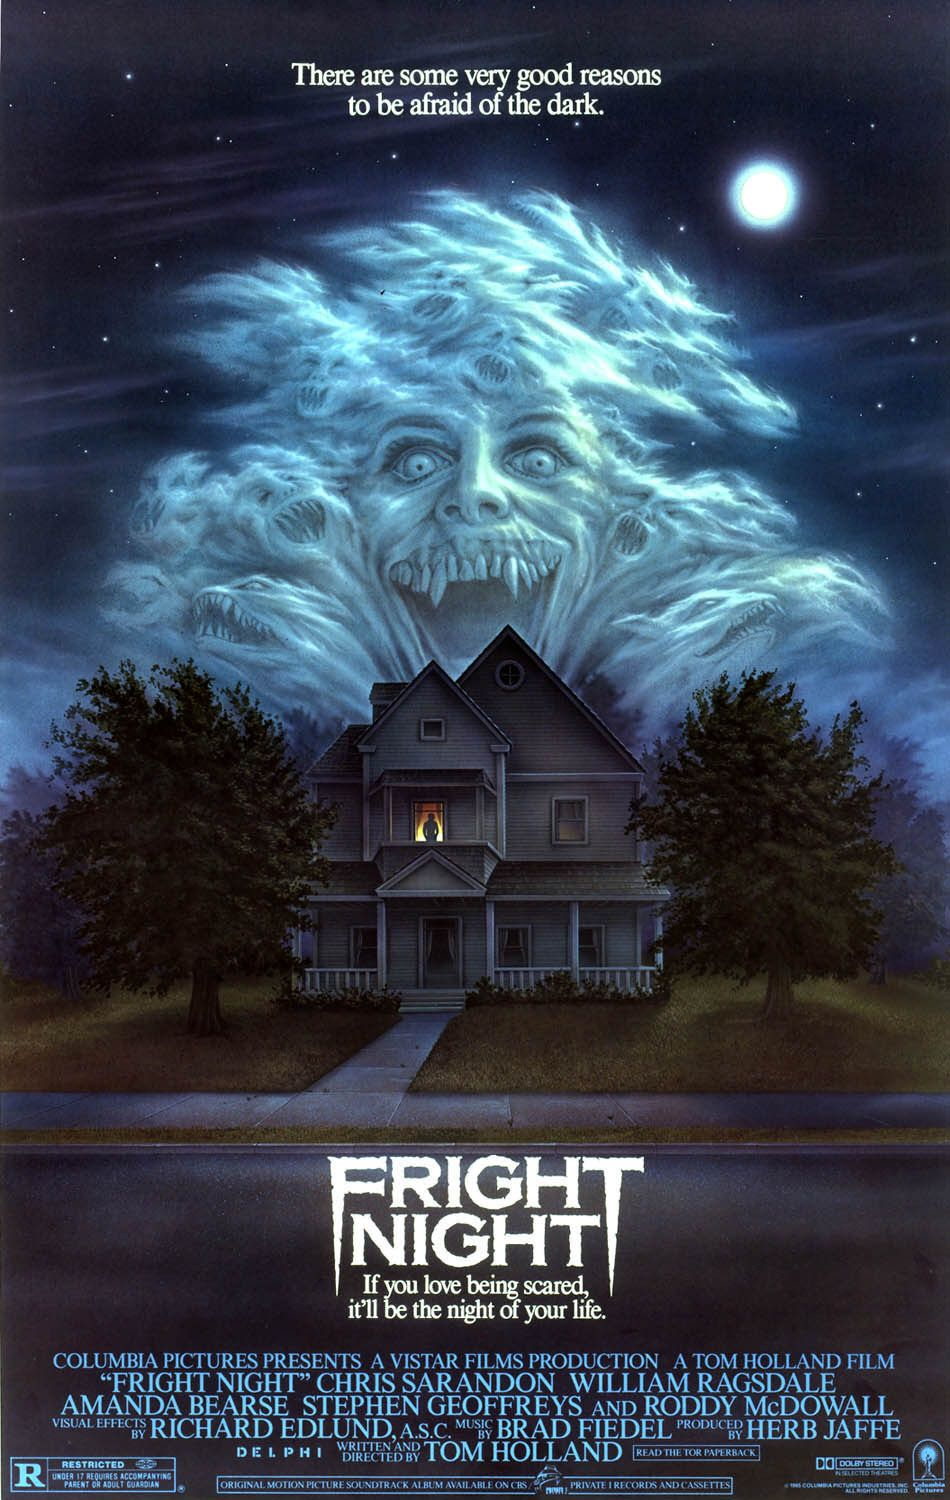 fright-night-movie-poster.jpg